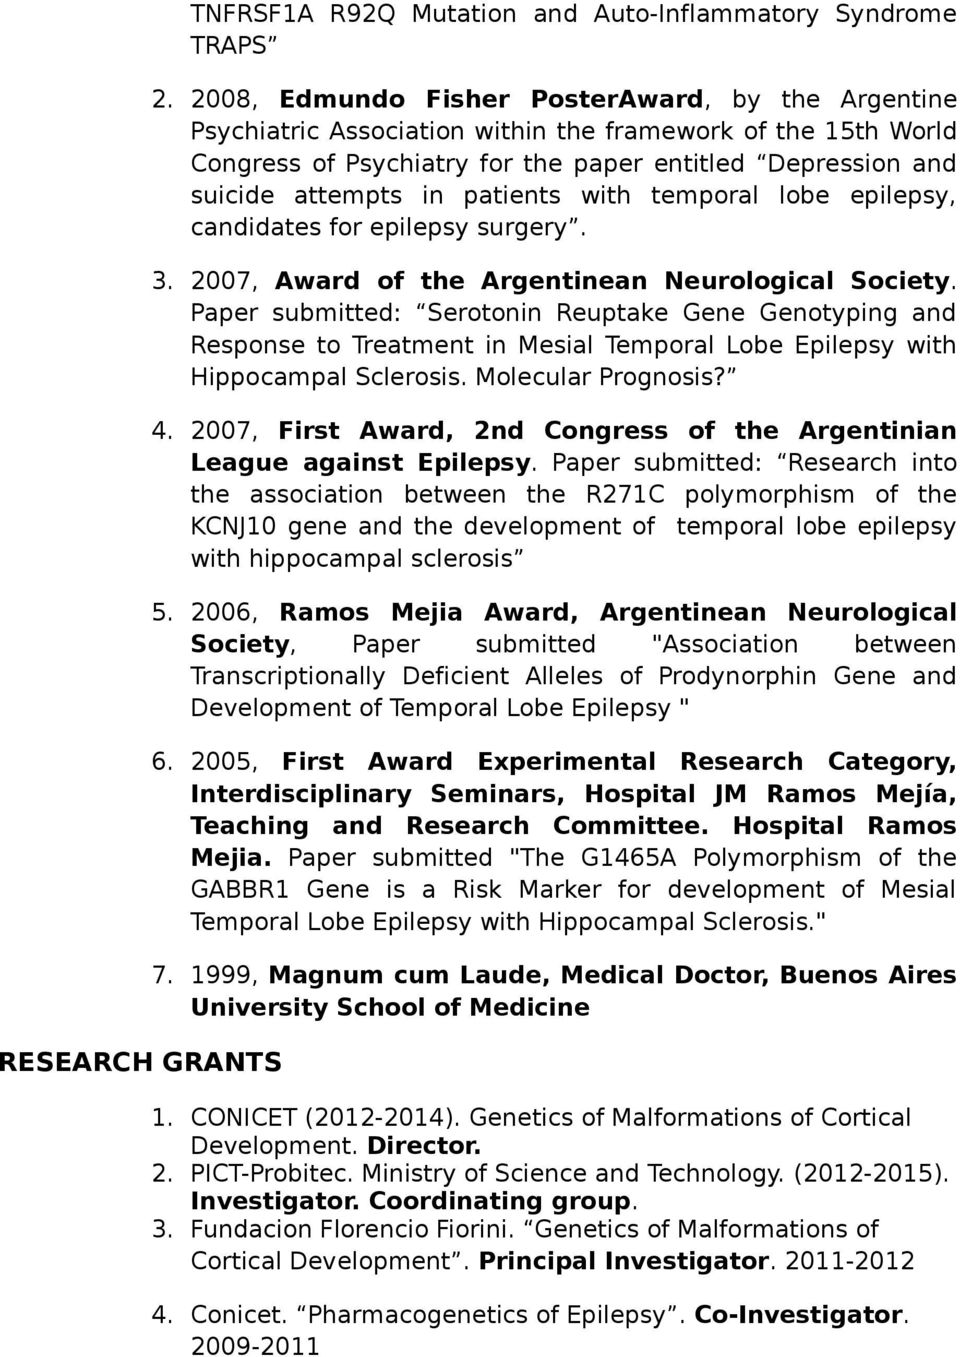 patients with temporal lobe epilepsy, candidates for epilepsy surgery. 3. 2007, Award of the Argentinean Neurological Society.